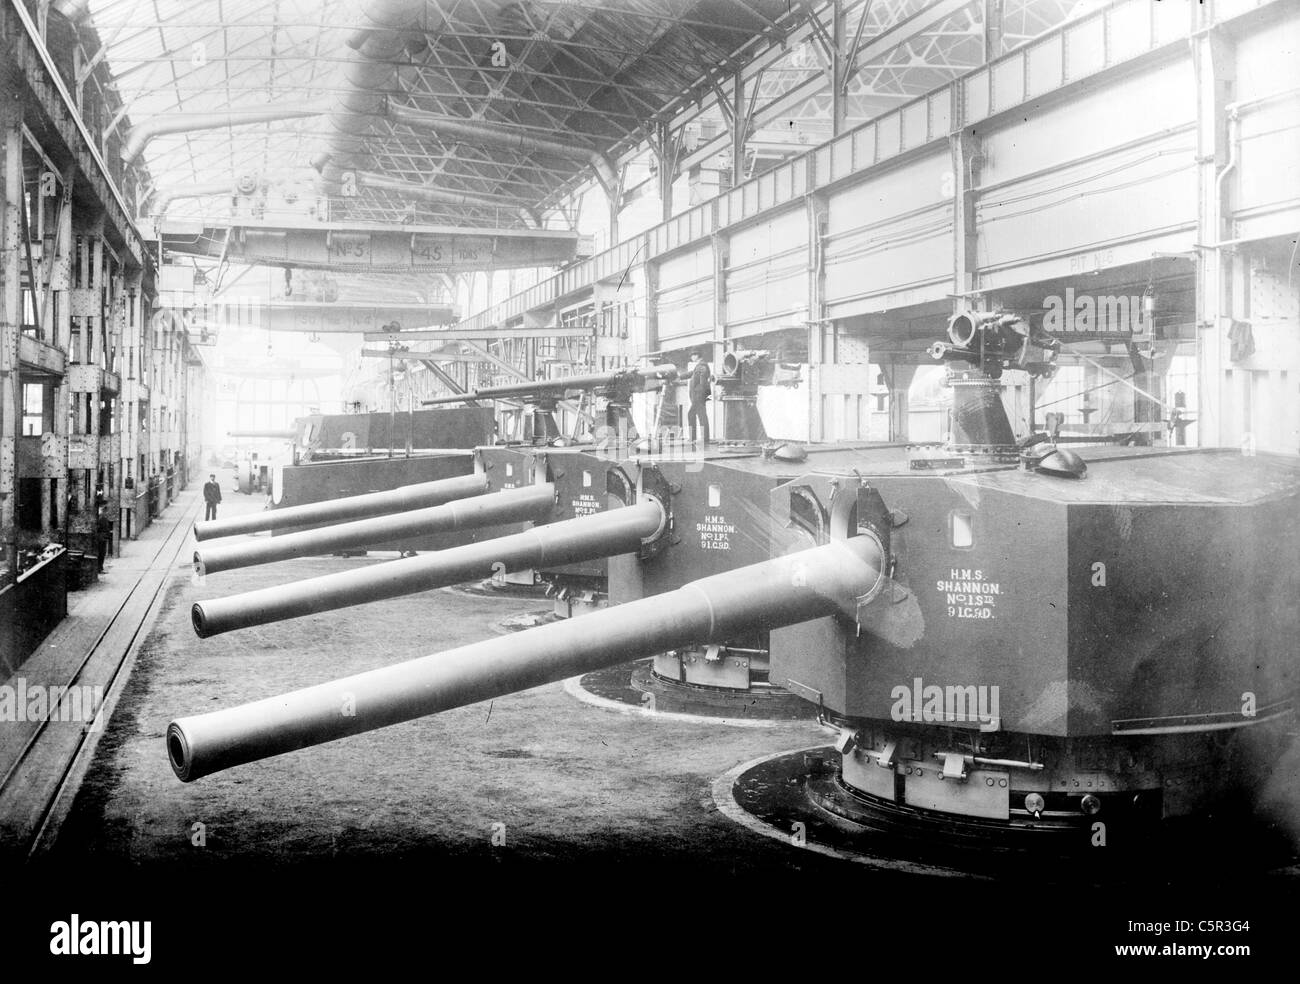 Row of guns for H.M.S. Shannon in Vickers Sons & Maxims Gun Works - Stock Image